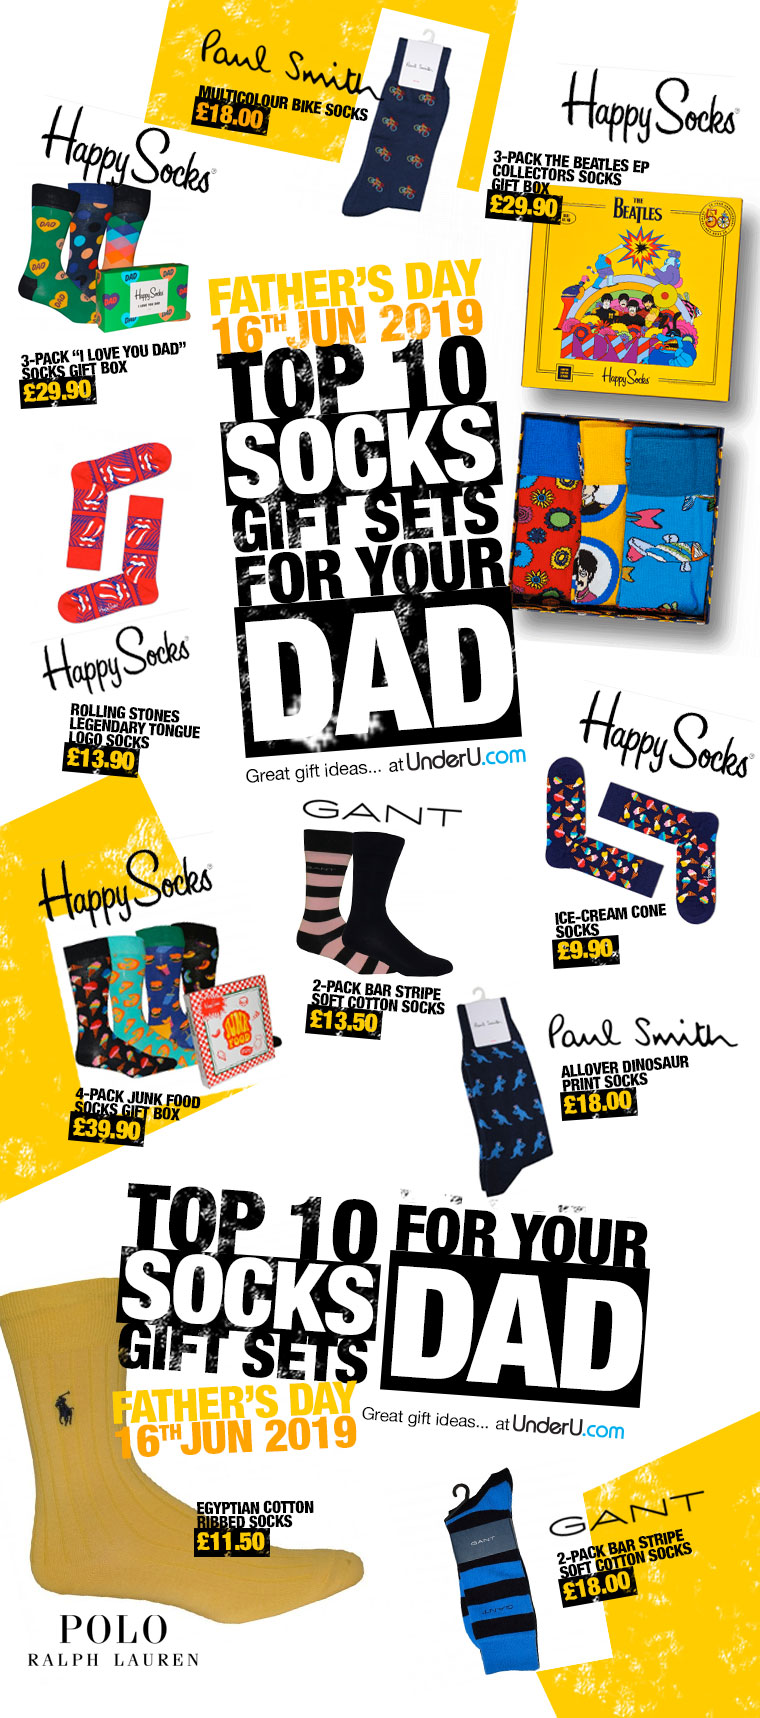 Father's Day 2019 - Top 10 sock gift sets for your Dad